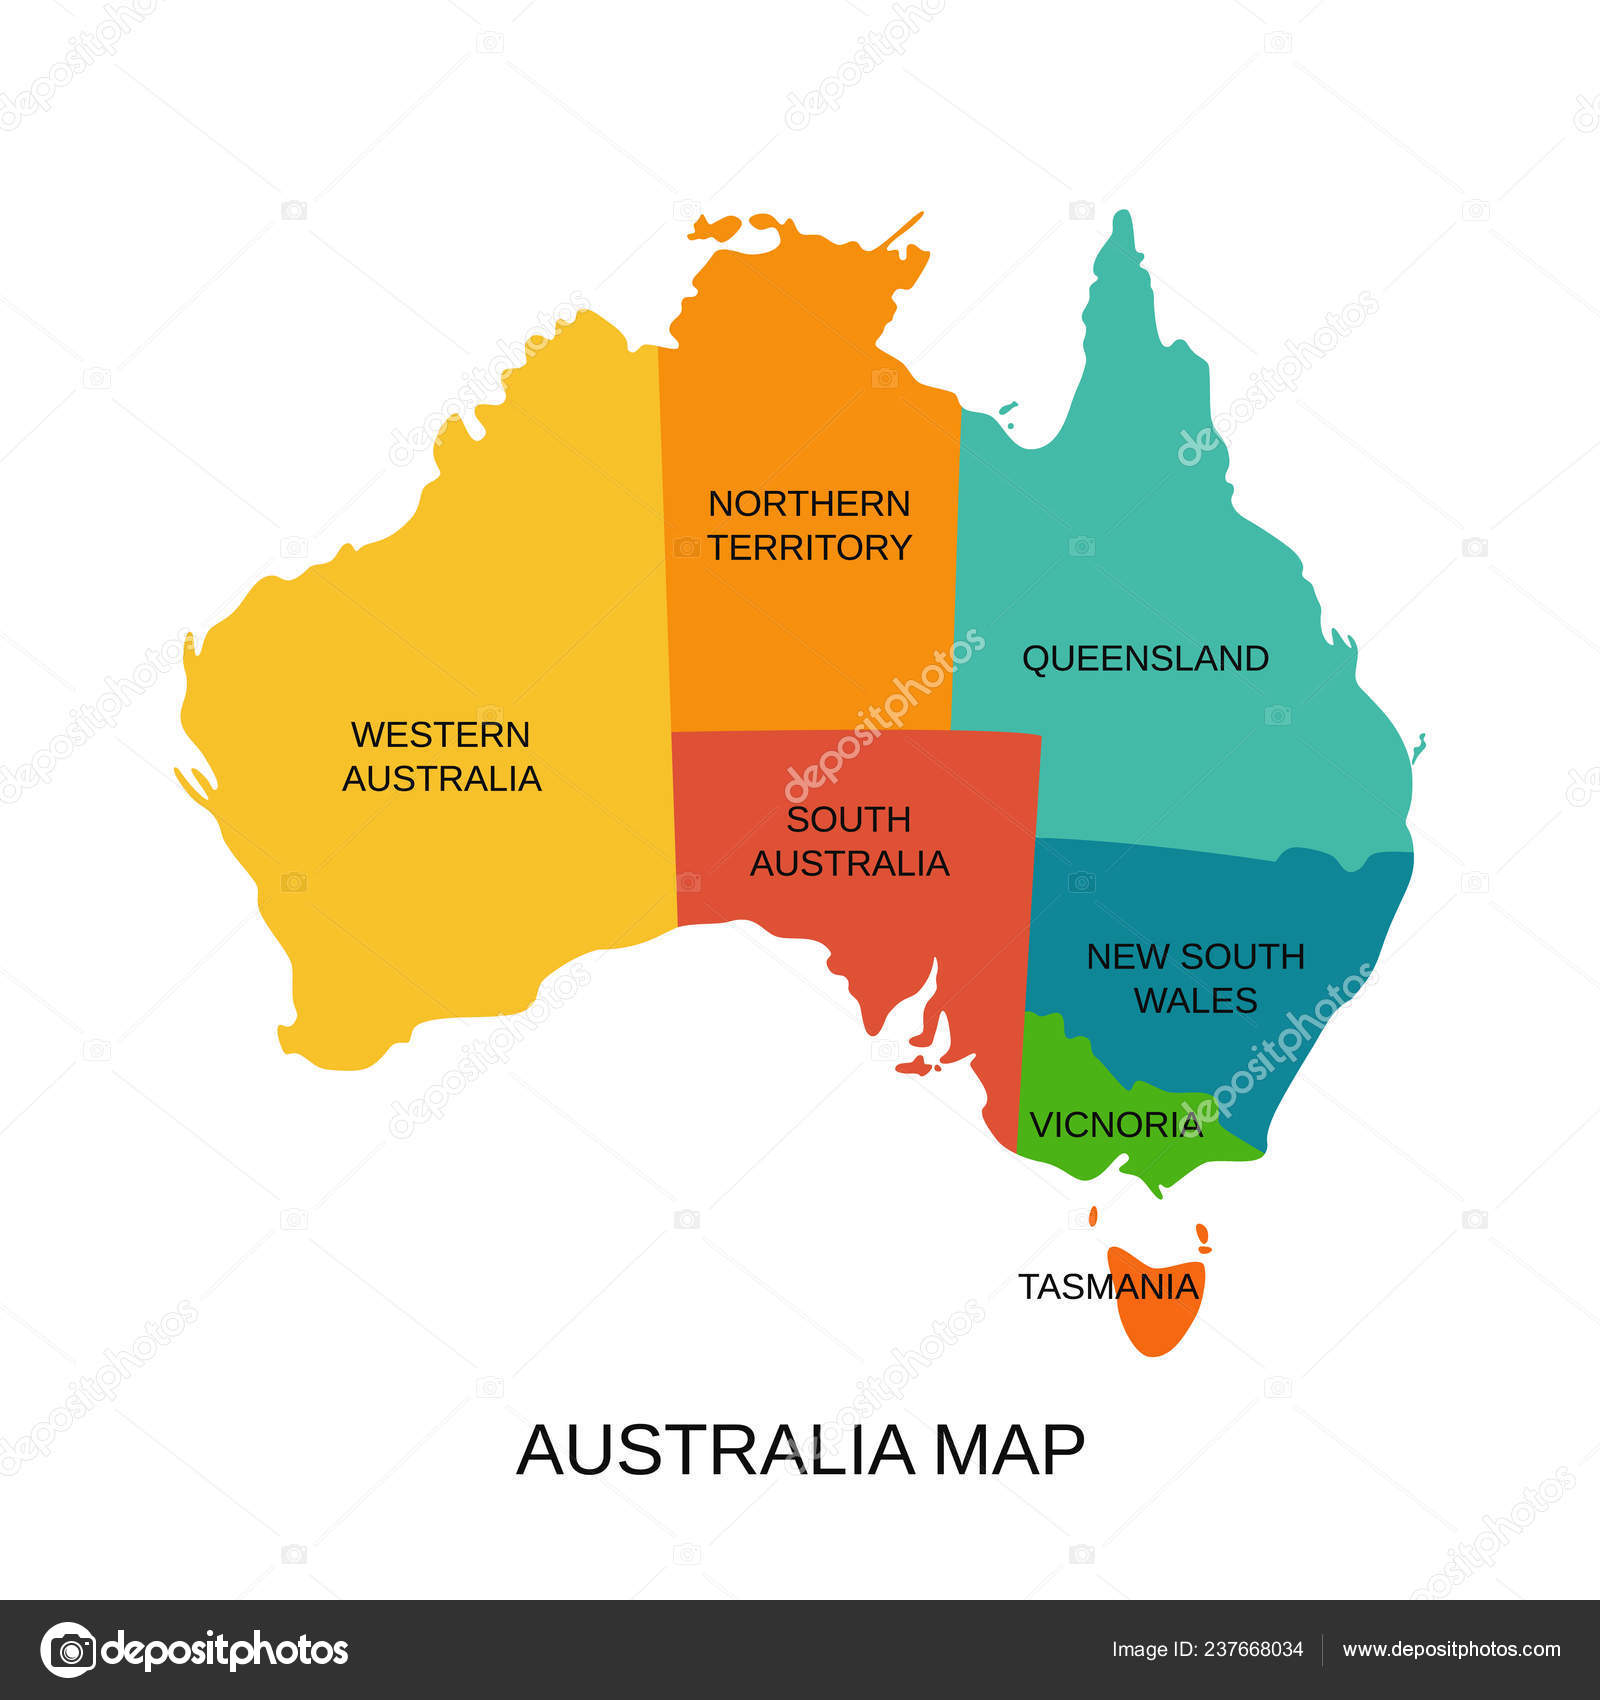 Map Of South Australia And Northern Territory.Australia Map Regions Vector Australian State Western South